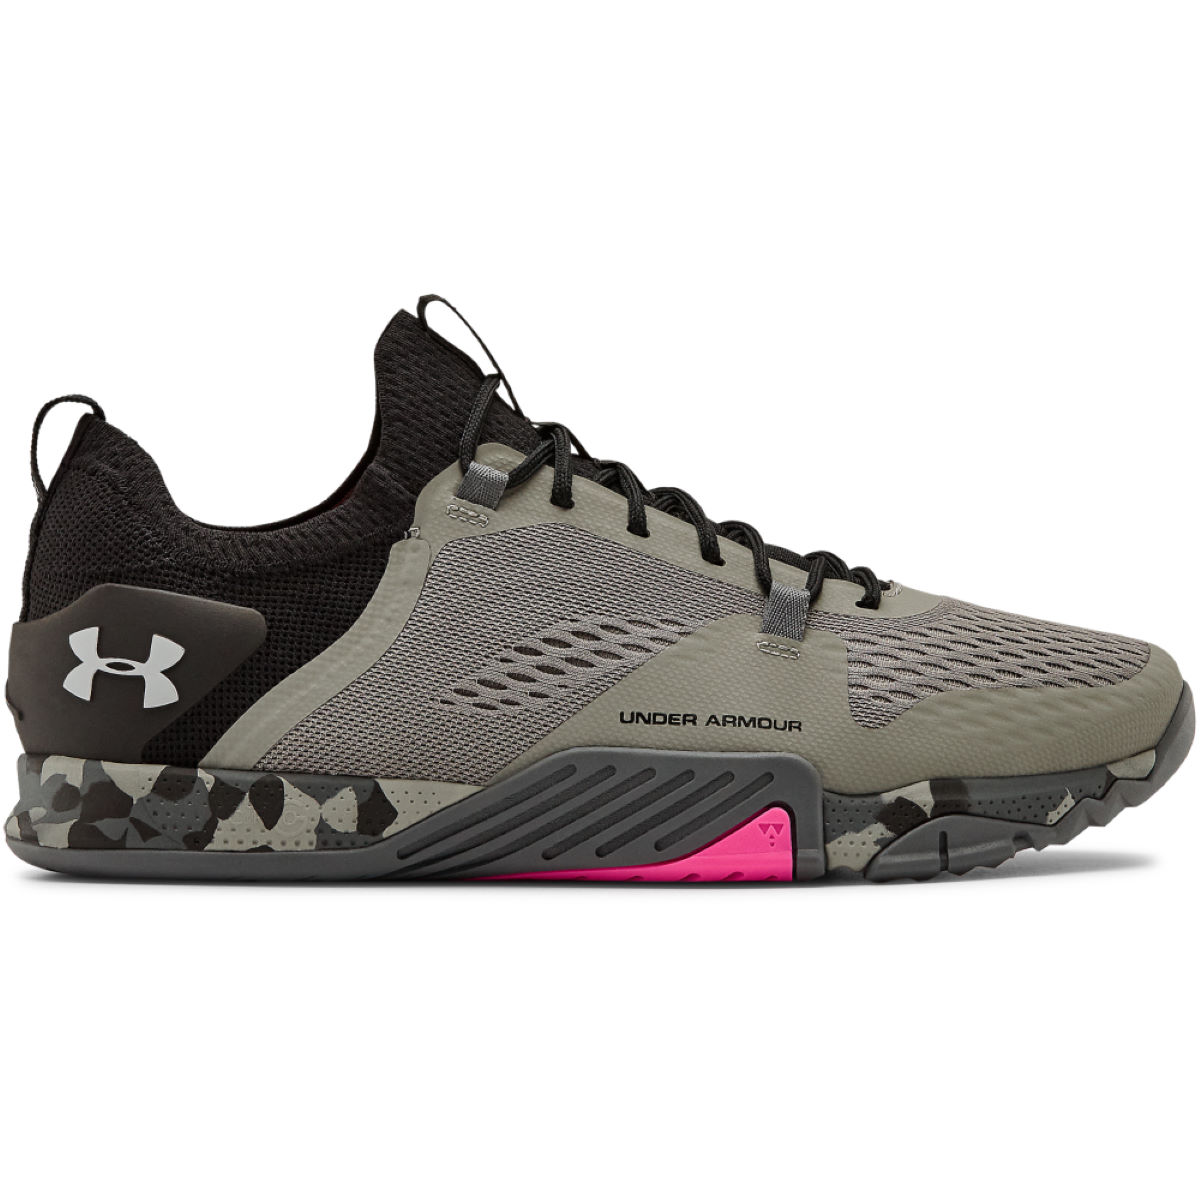 Under Armour Under Armour TriBase Reign 2 Gym Shoe   Fitness Shoes